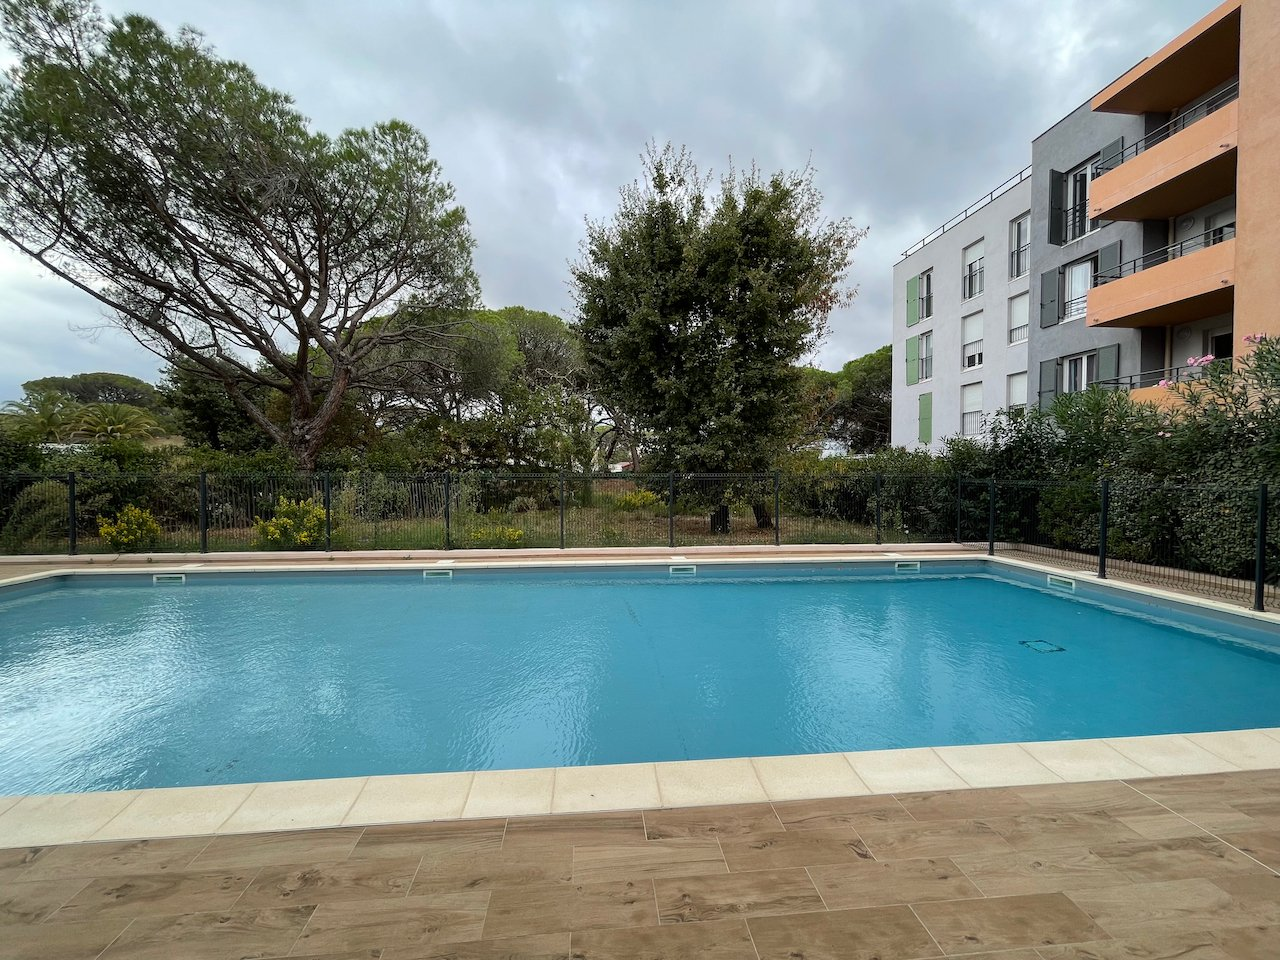 Frejus - modern and spacious 3/4 room apartment in residence with pool